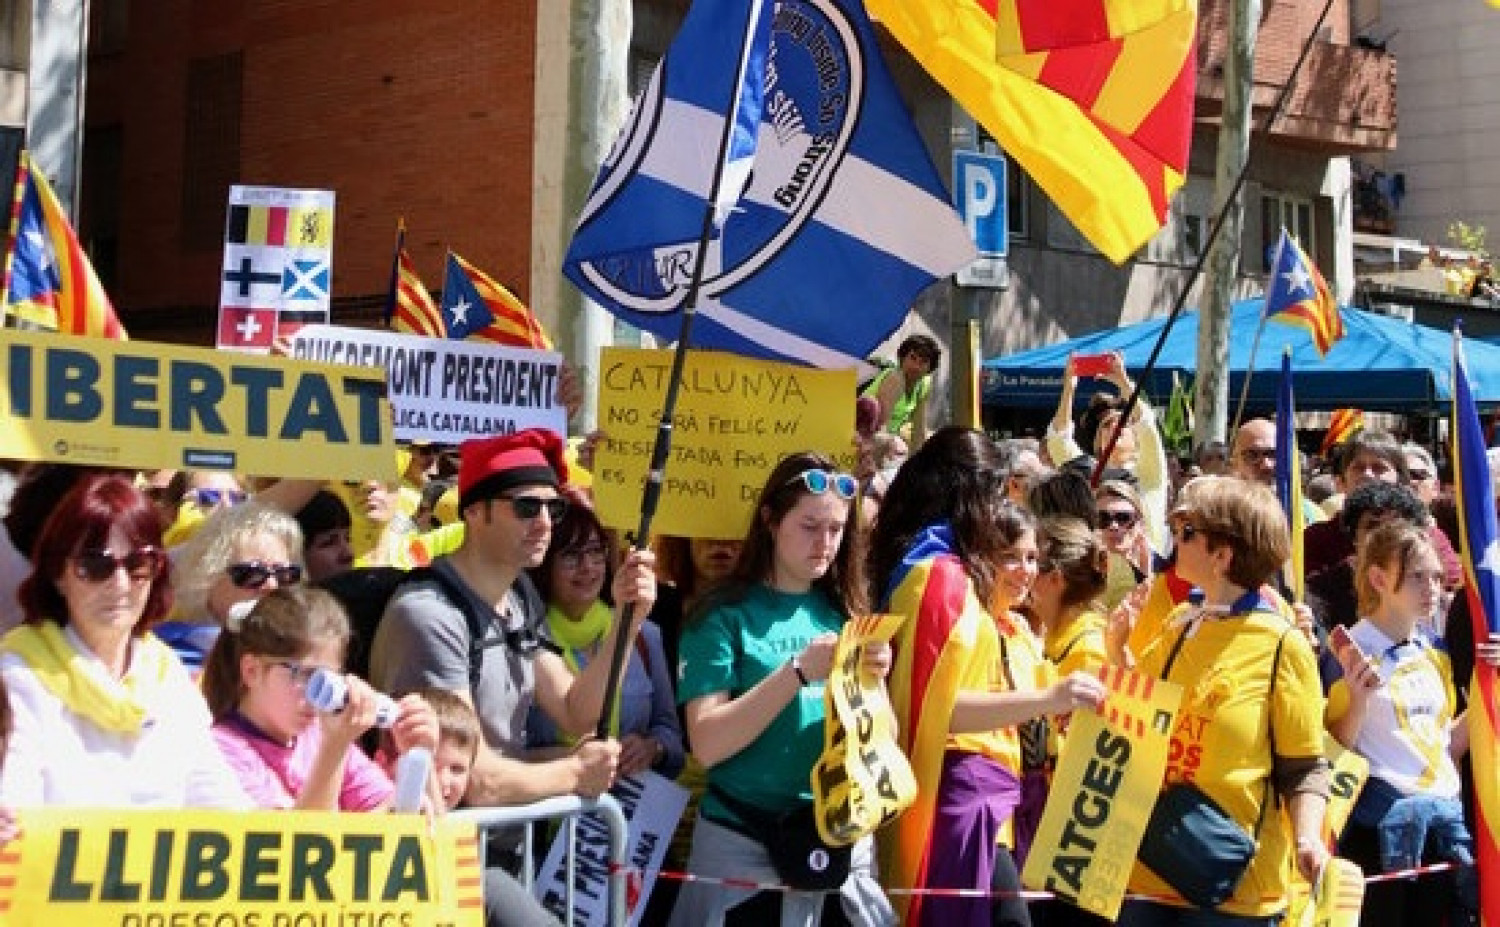 A Scottish flag is waved at a demonstration in Barcelona organized by Space for Democracy and Co-existence, April 15, 2018 (by Gemma Sánchez)